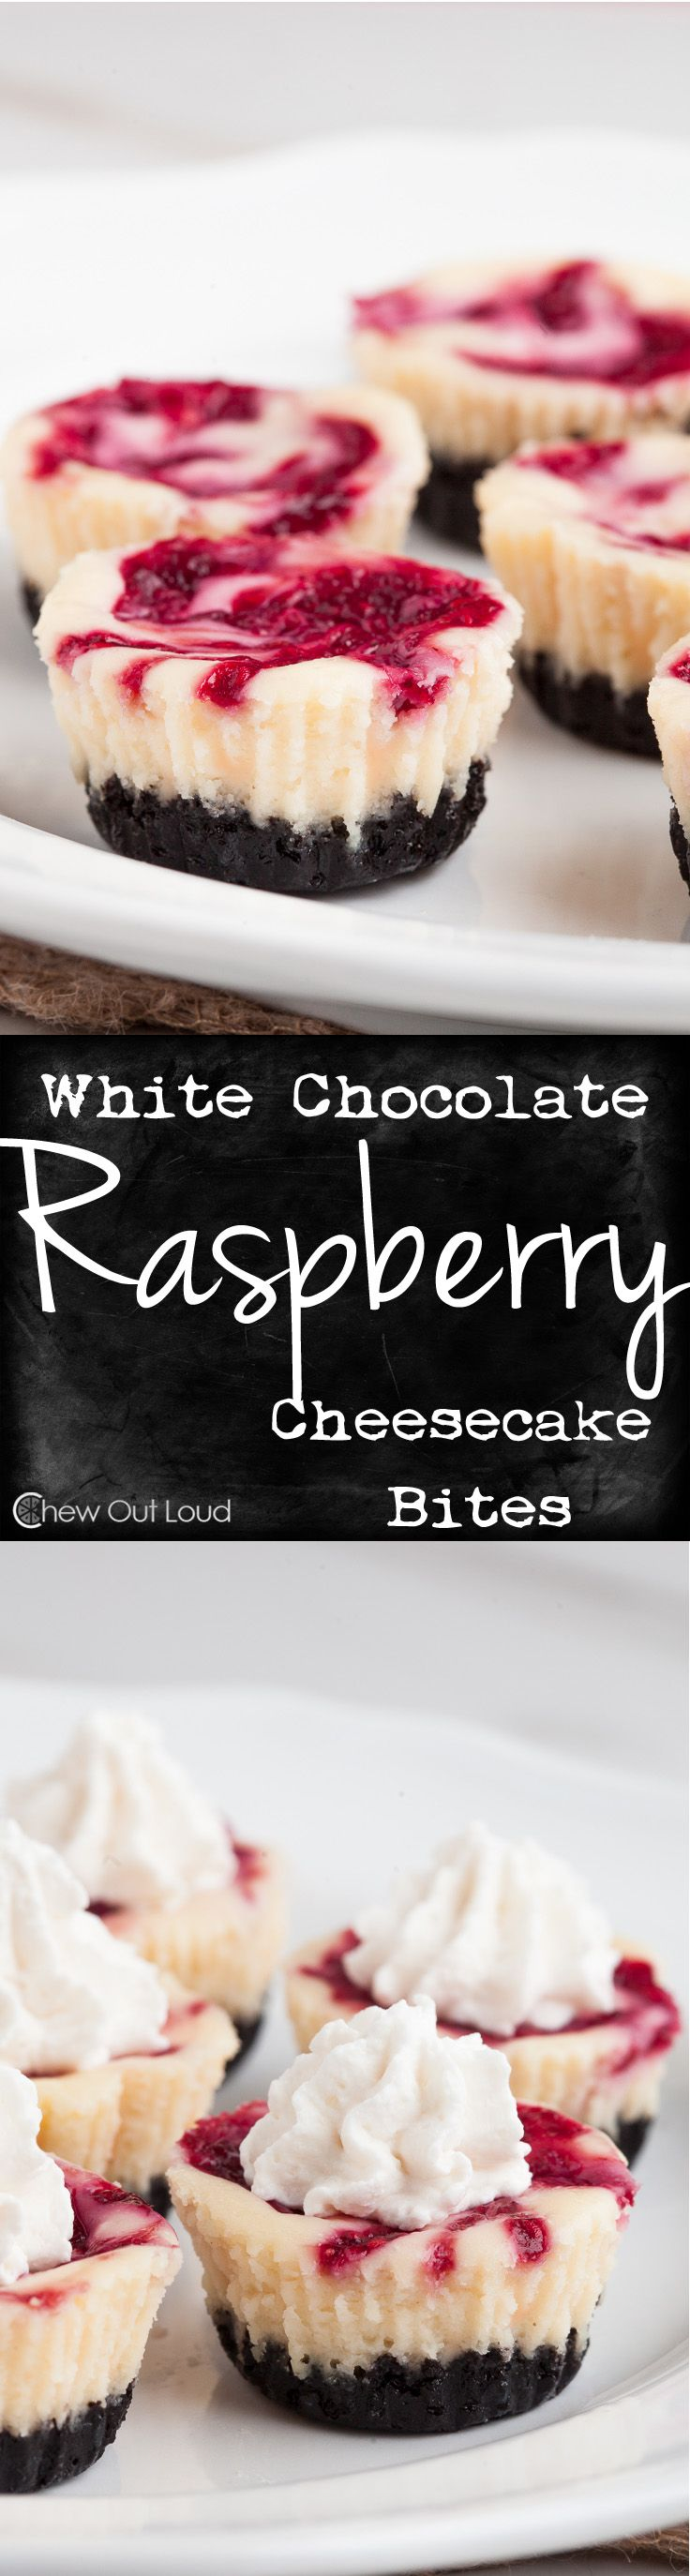 White Chocolate Raspberry Cheesecake Bites - NY Style dense, rich, luscious cheesecakes that you can pop into your mouth.